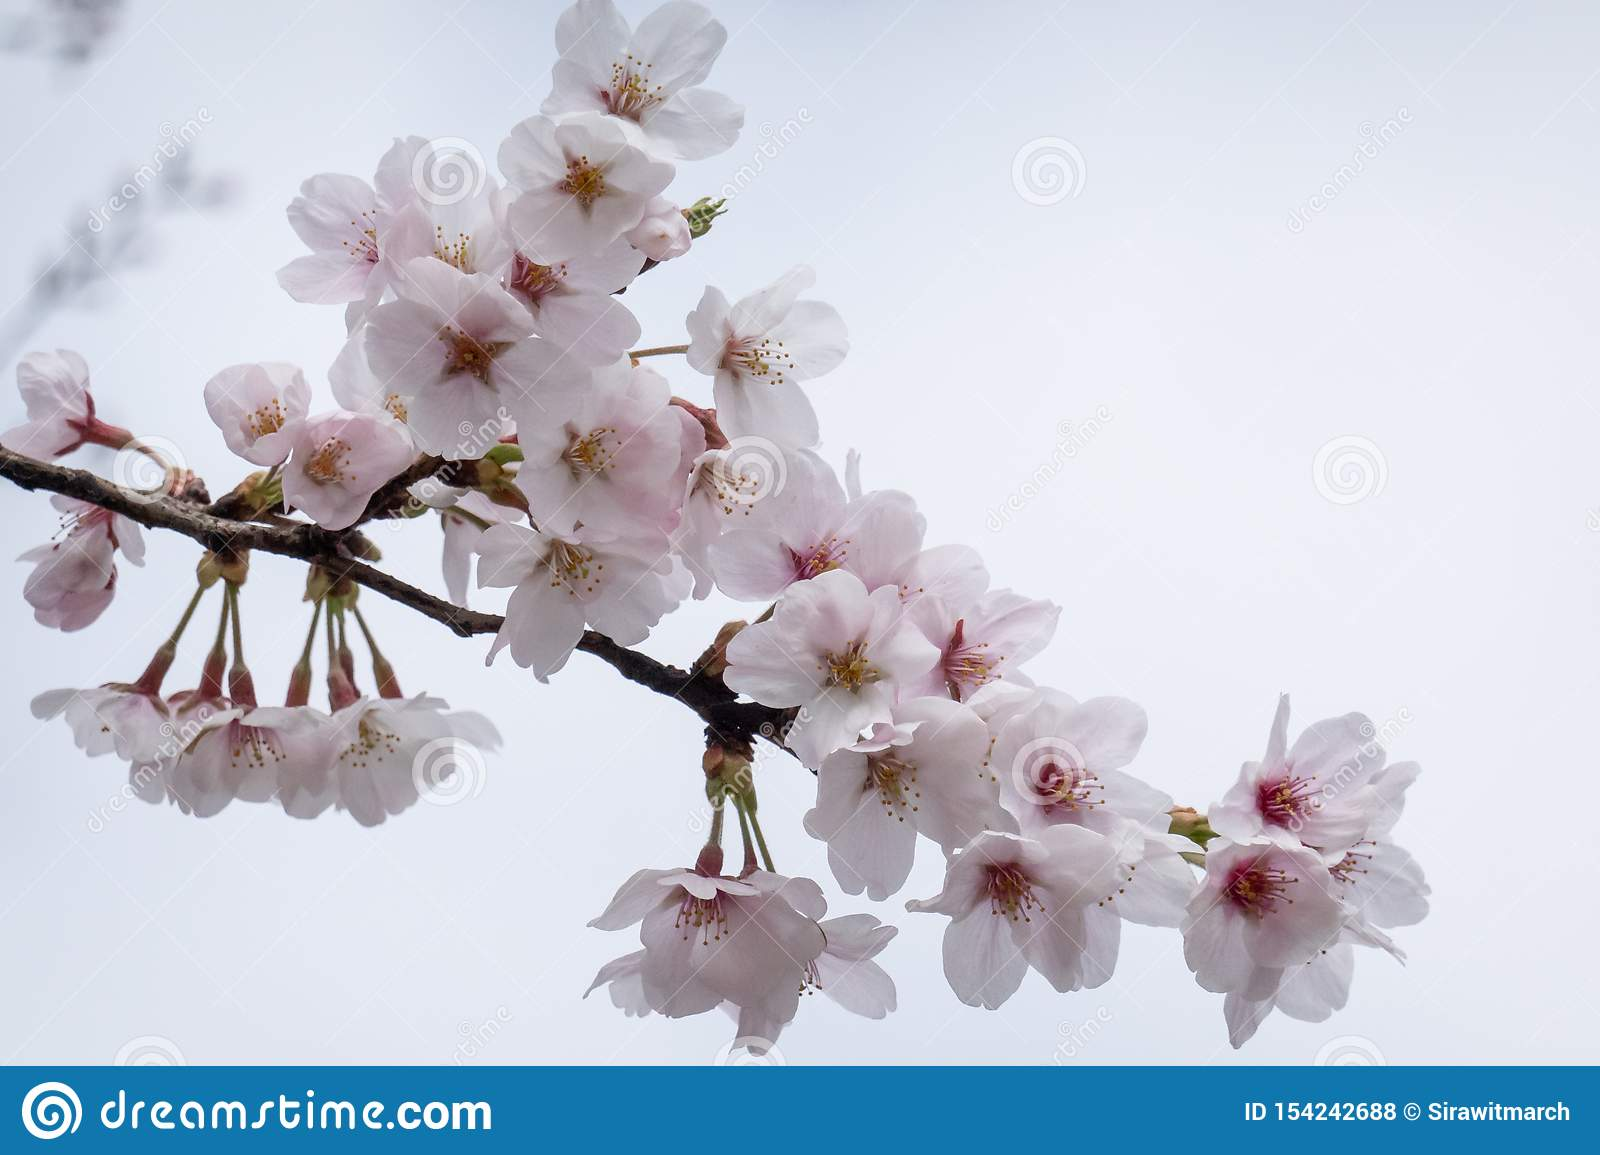 Cherry Blossom Sakura Branch With Flowers Stock Photo Image Of Beautiful Detail 154242688